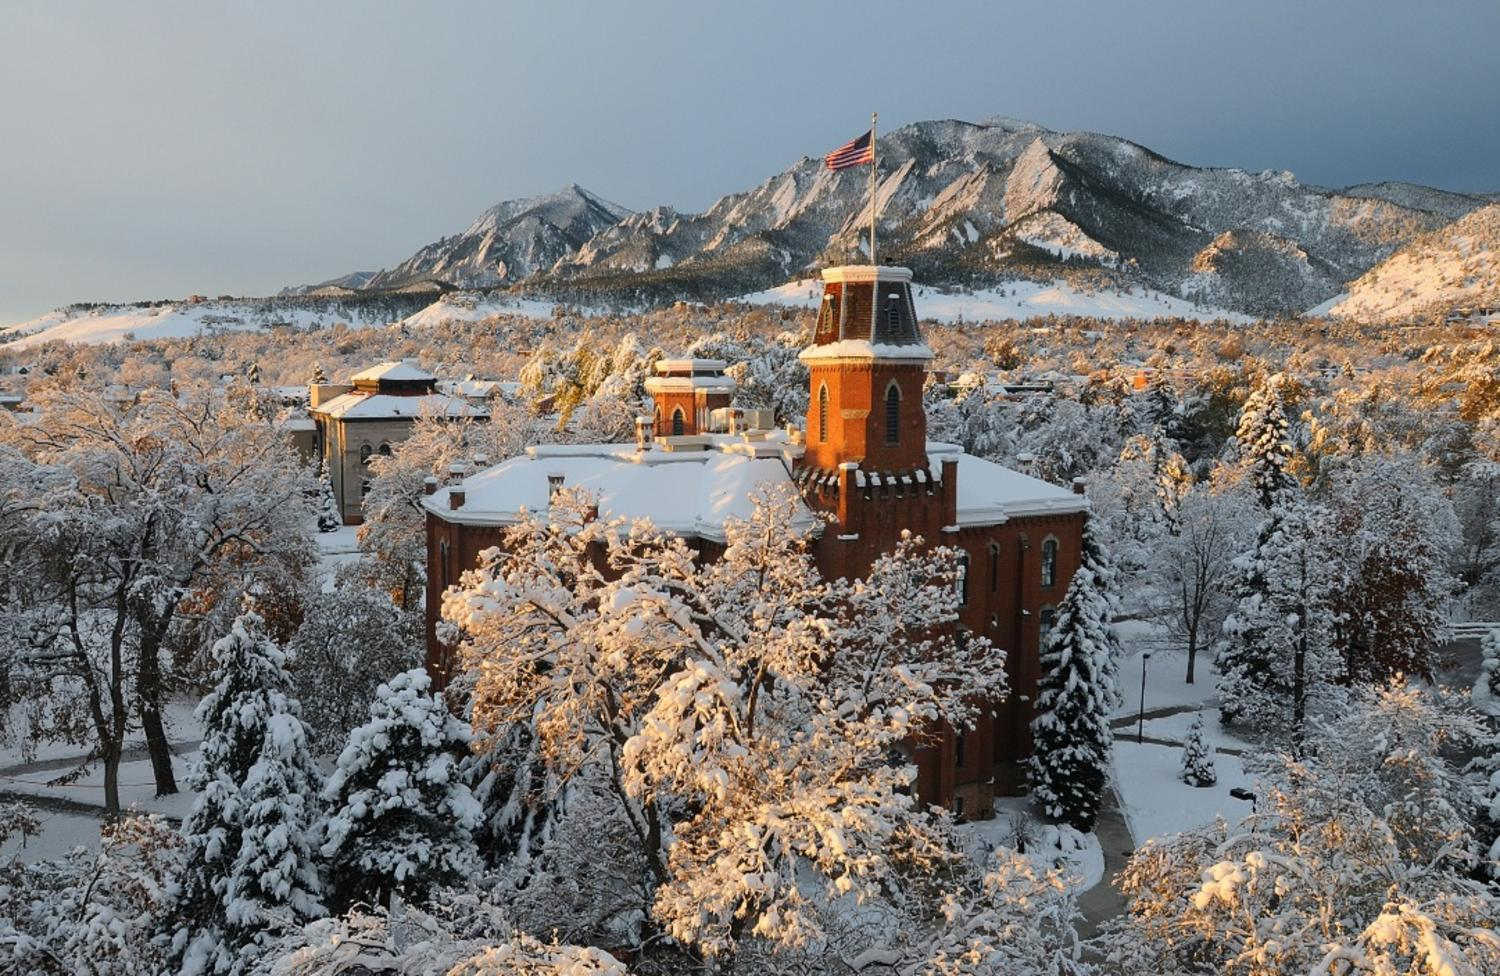 The majestic, snow-covered Flatirons is a breathtaking backdrop with Old Main at the University of Colorado Boulder in the foreground. (Photo by Casey A. Cass/University of Colorado)